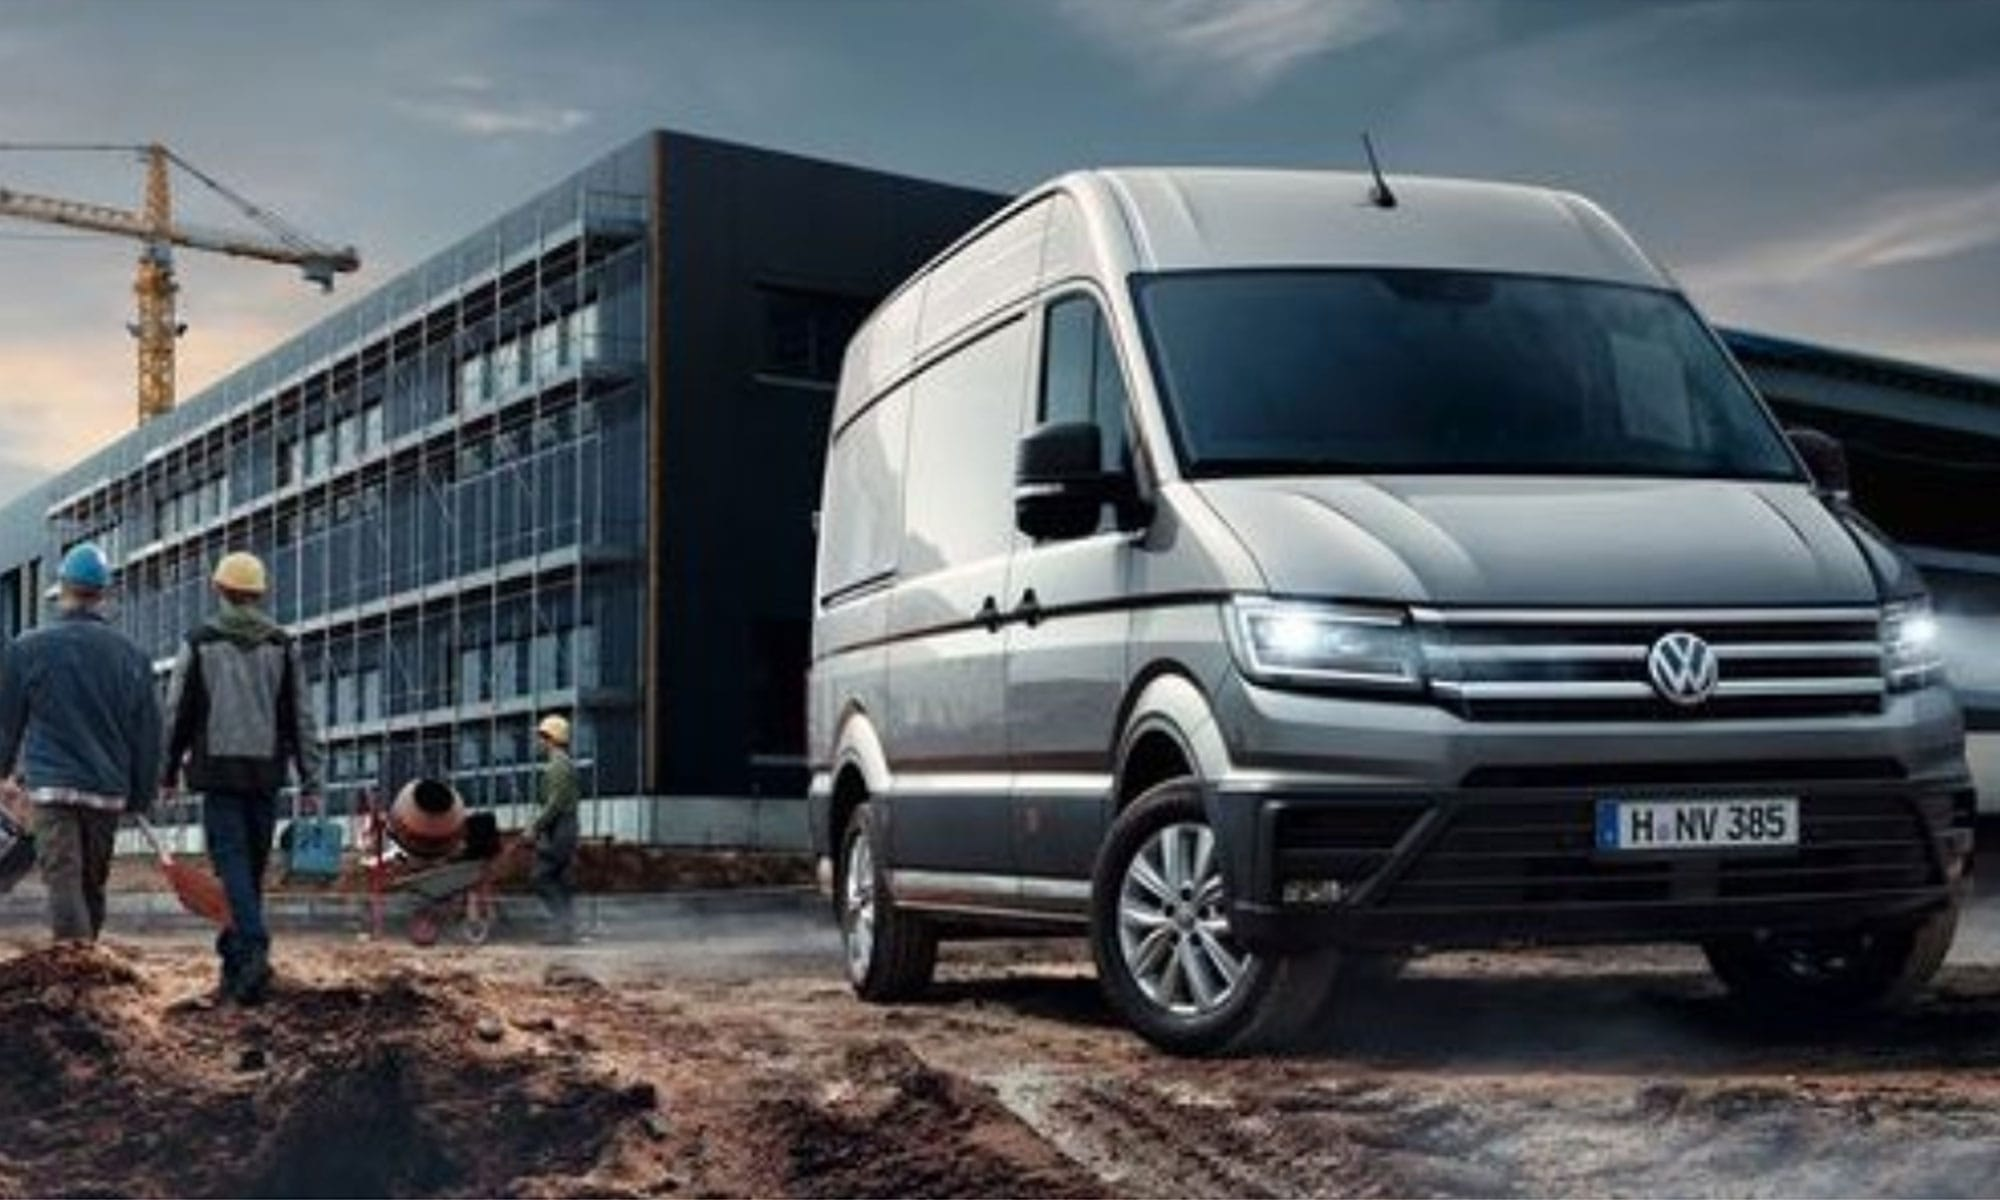 Location utilitaire camion volkswagen crafter L5 H3.